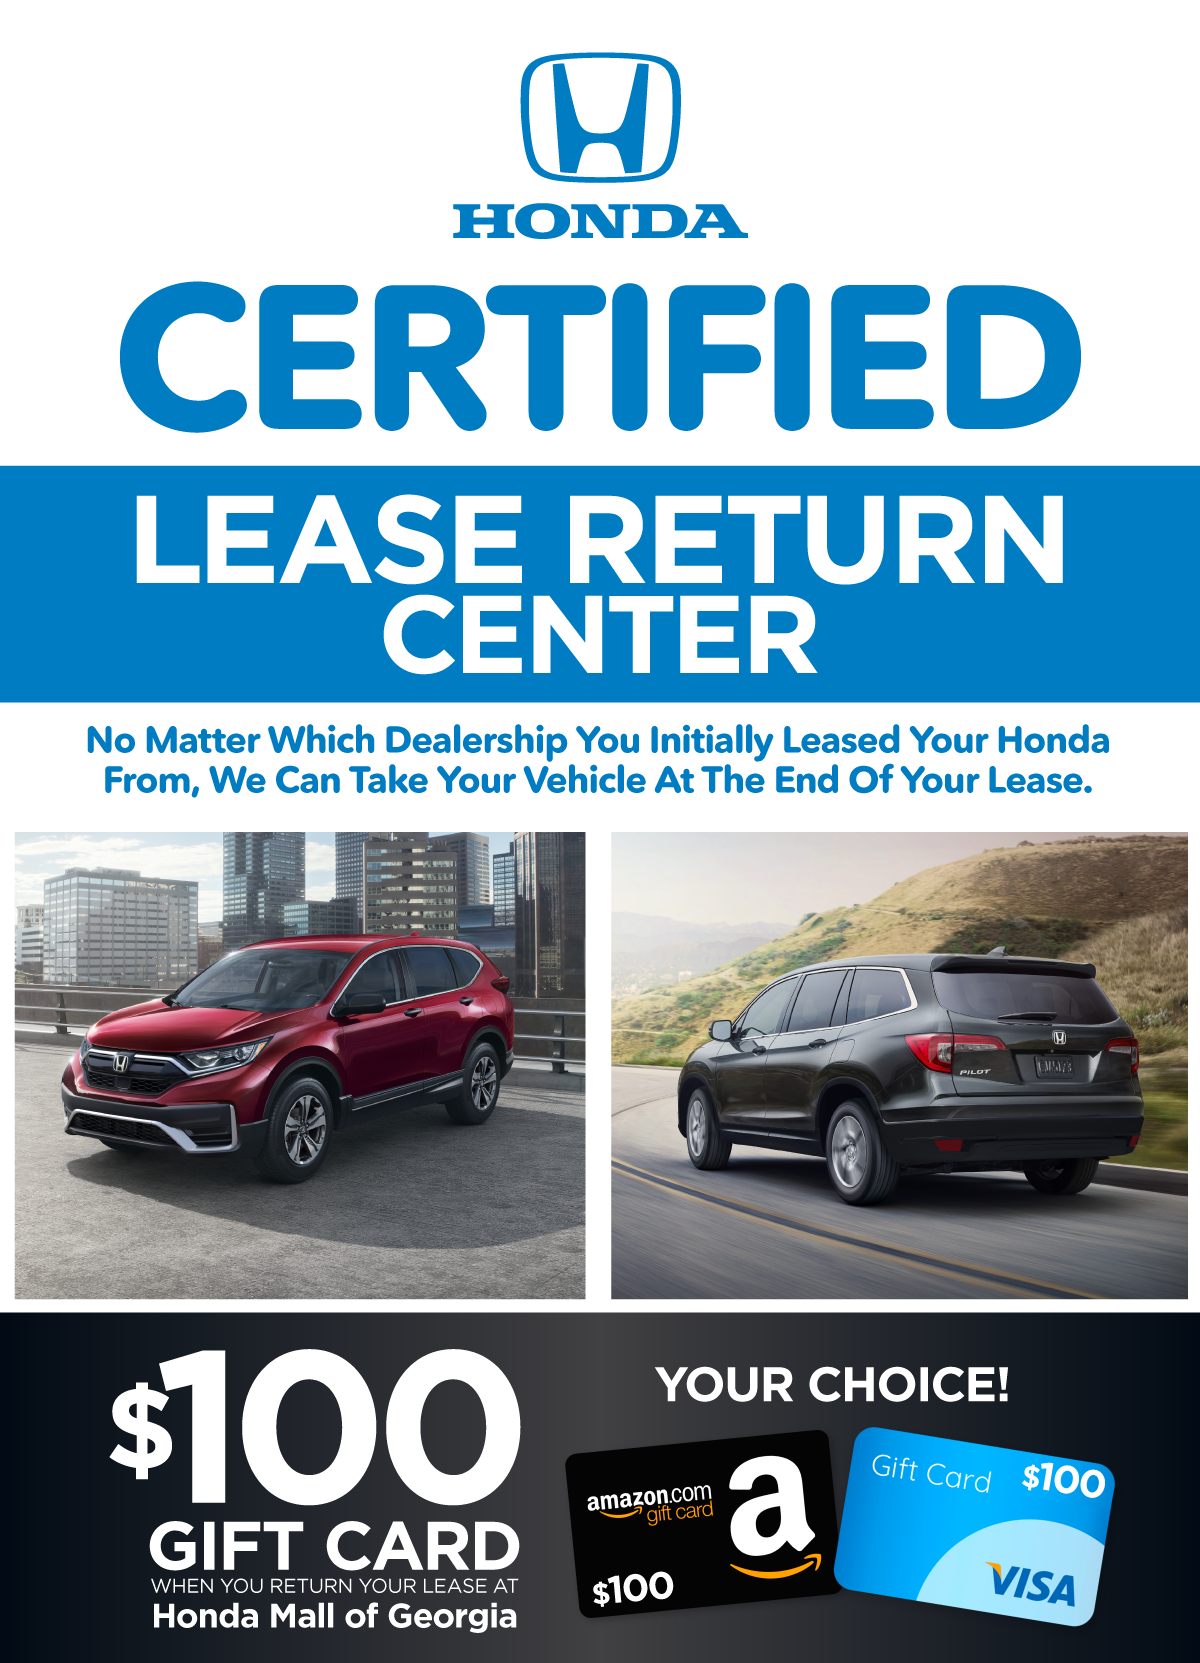 Honda Certified Lease Return Center - We Can Take Your Vehicle at the End of Your Lease